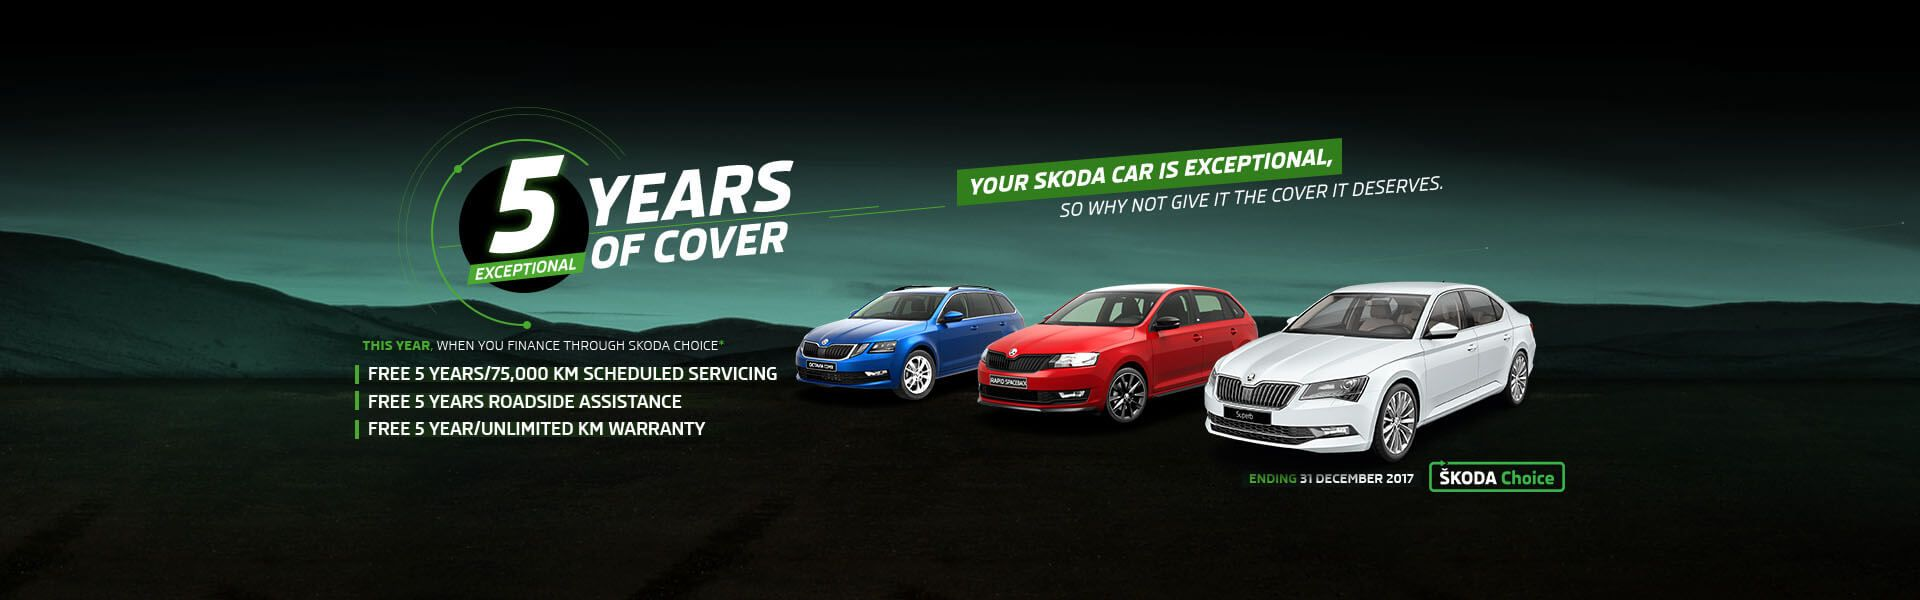 Skoda Car Benefits